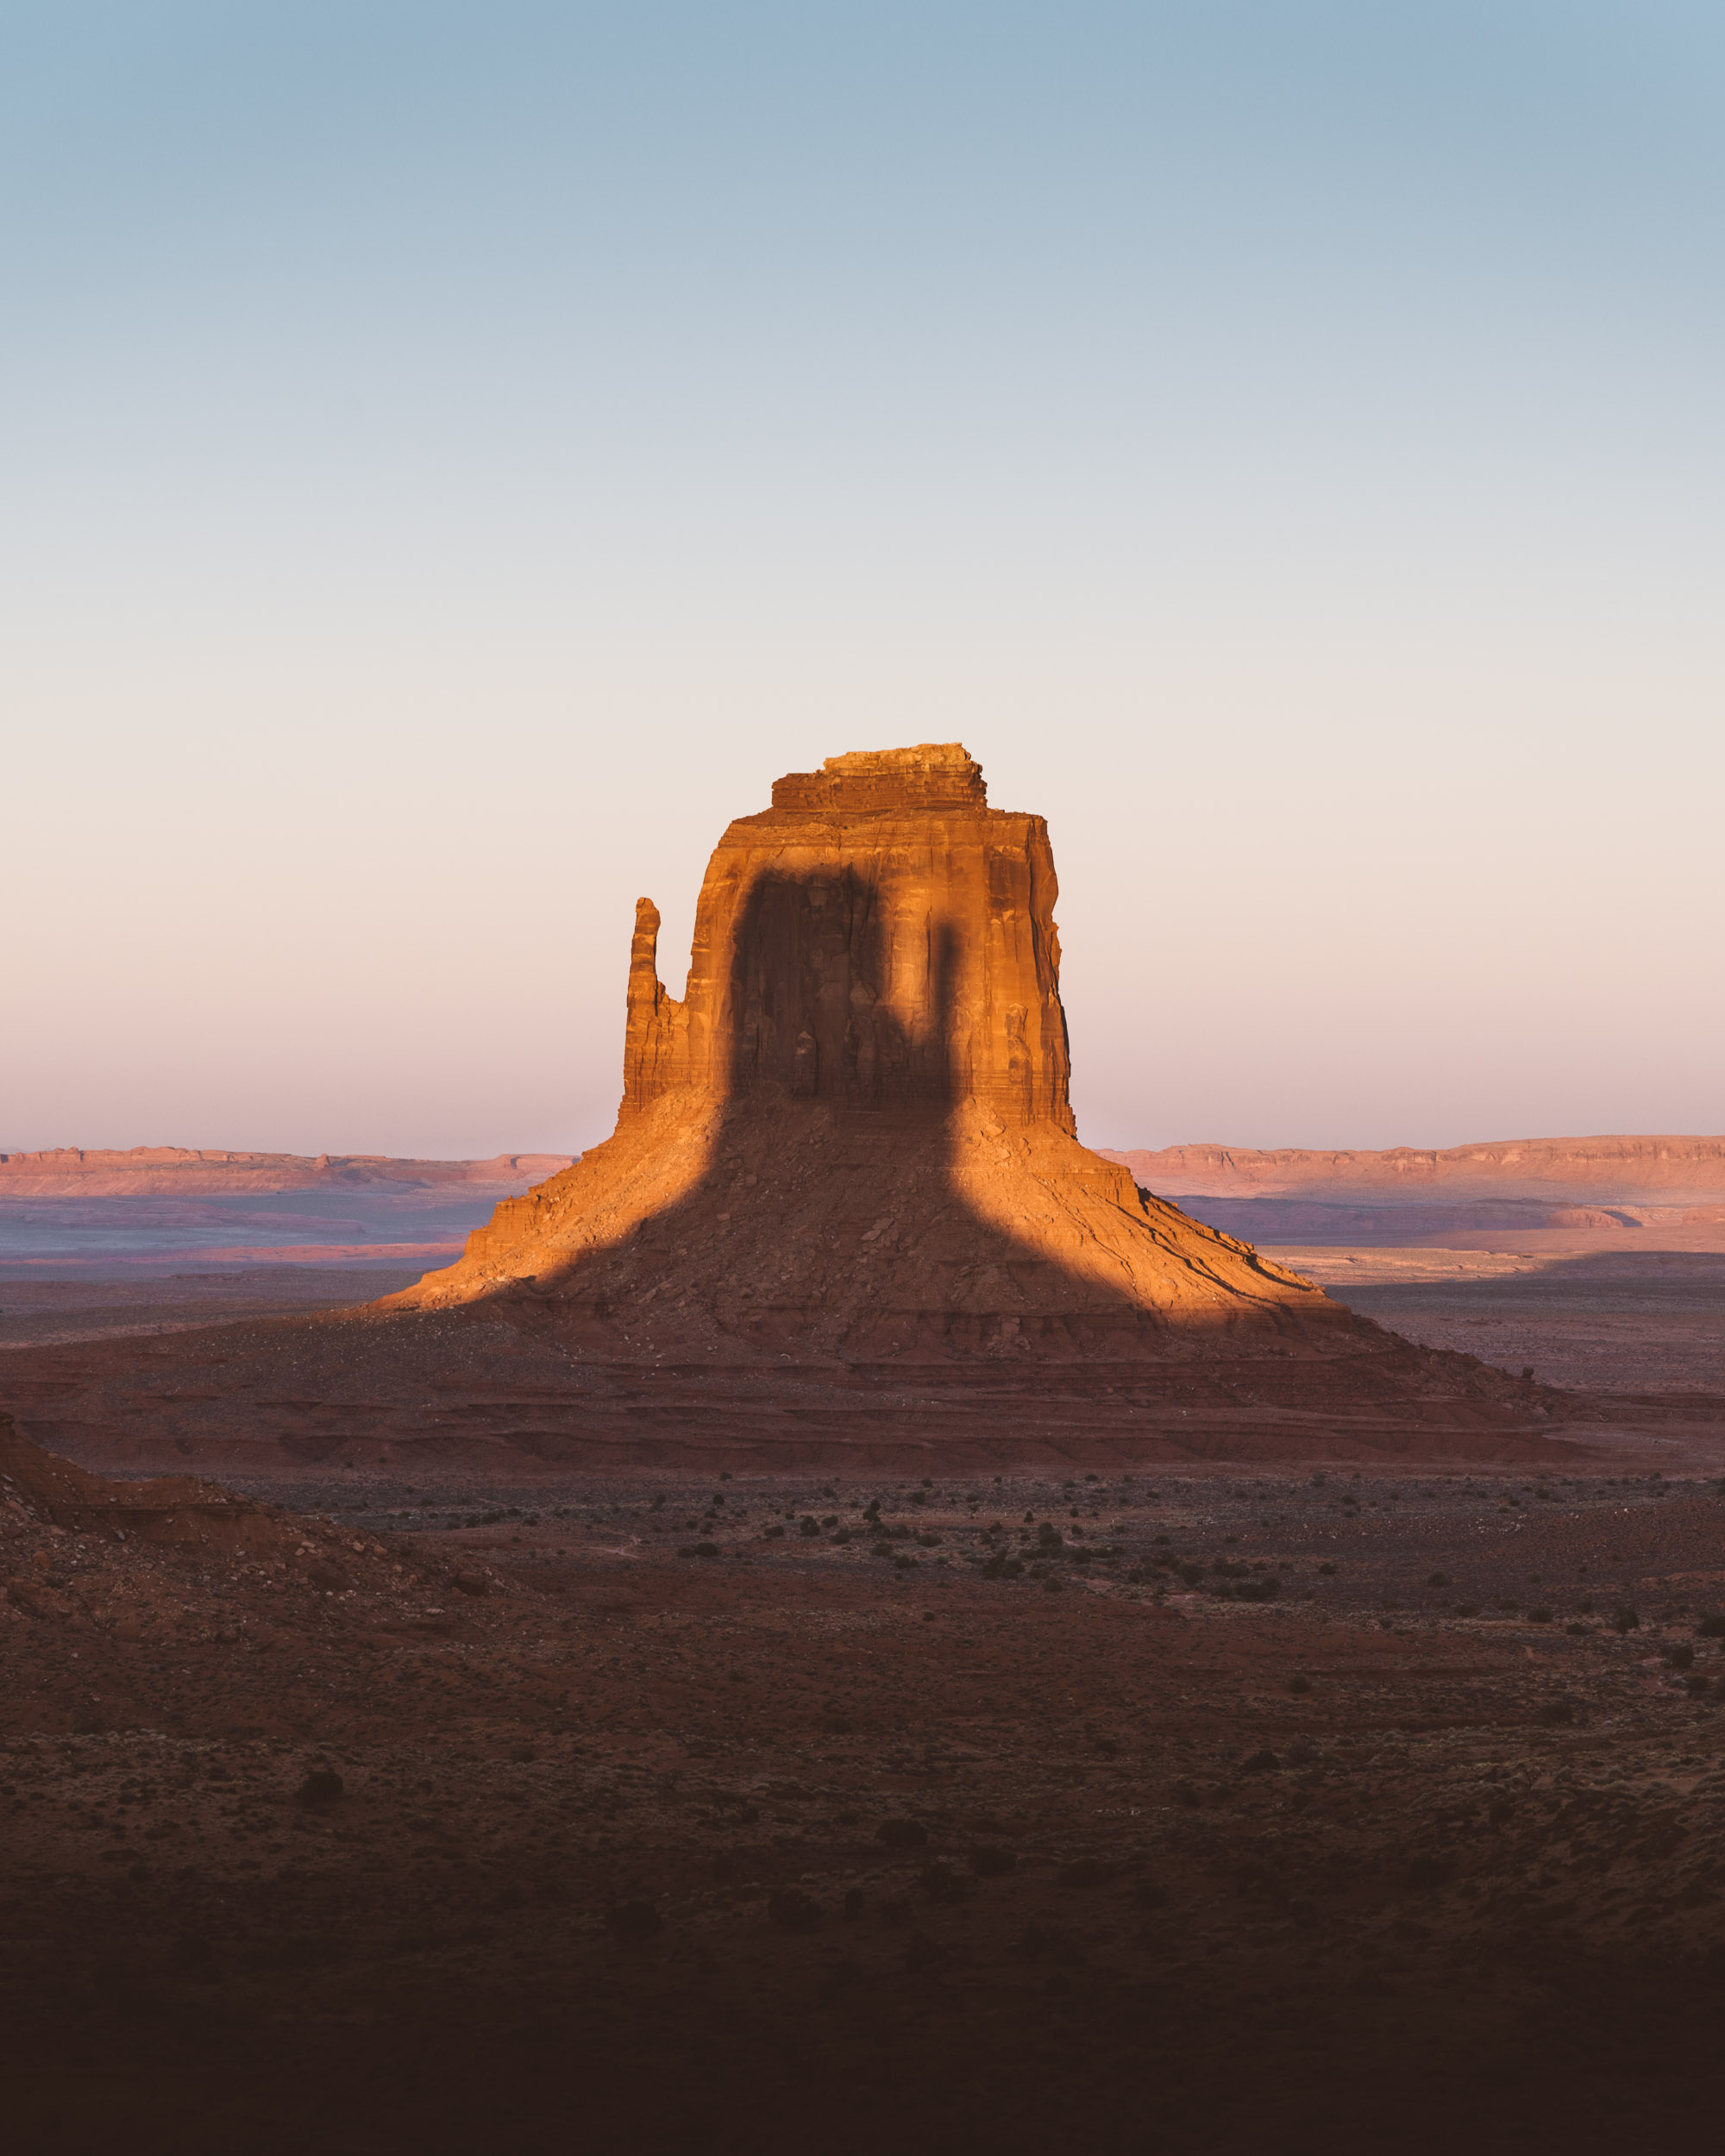 Monument-Valley-West-Mitten-Shadow-7303790.jpg